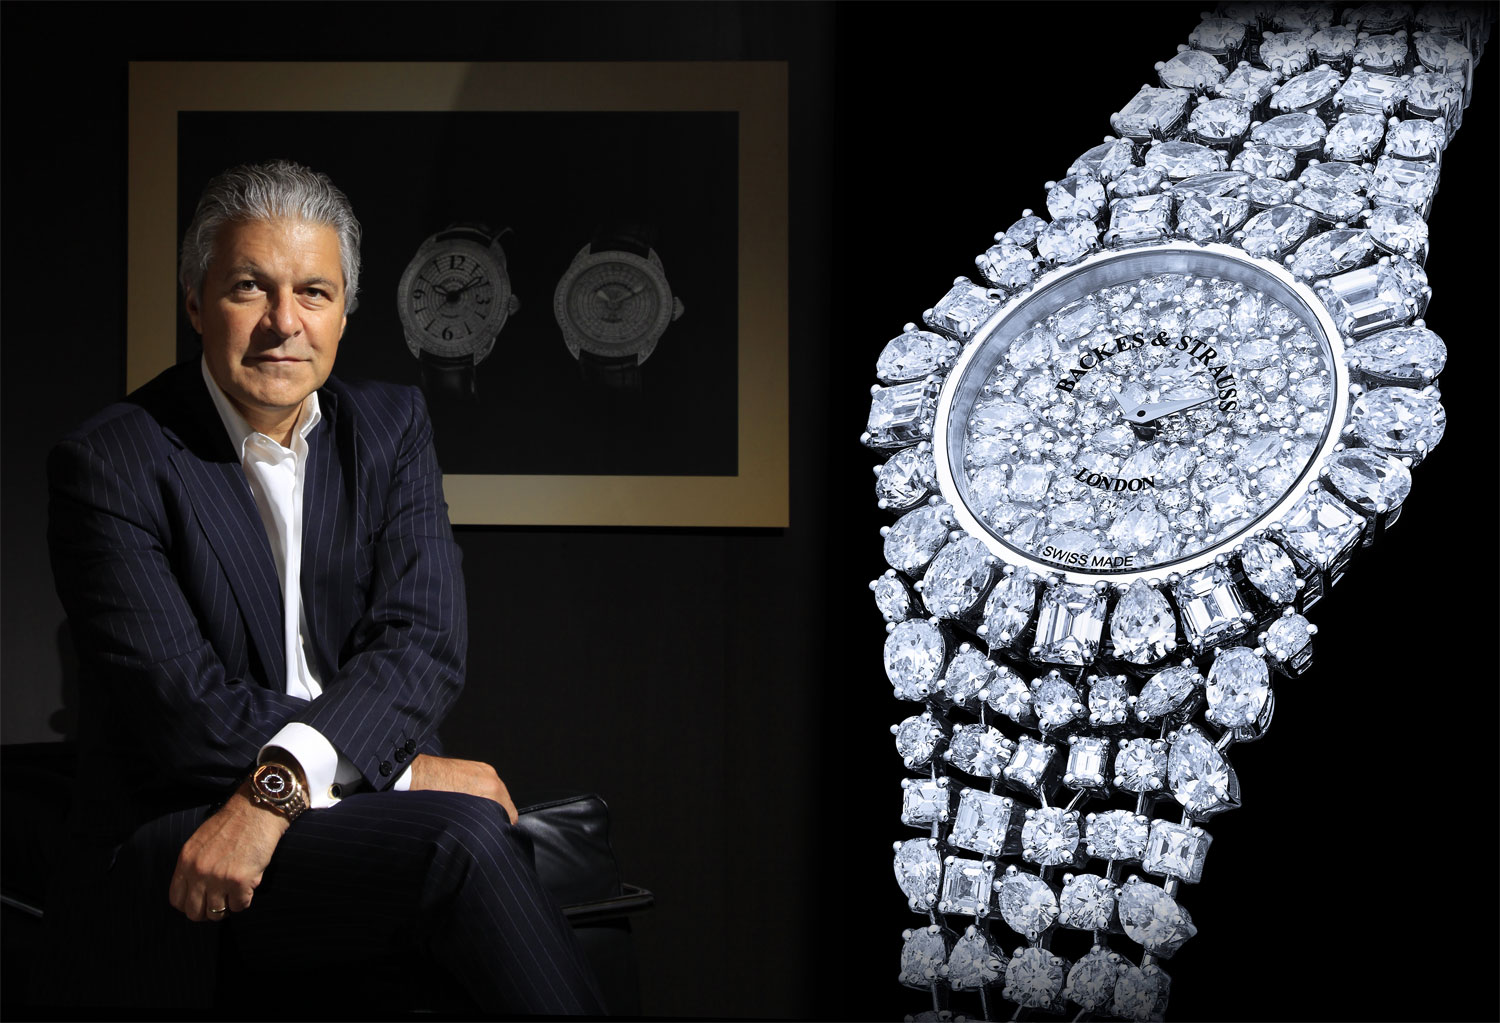 Backes & Strauss sparkle at the World Presentation of Haute Horlogerie 2015